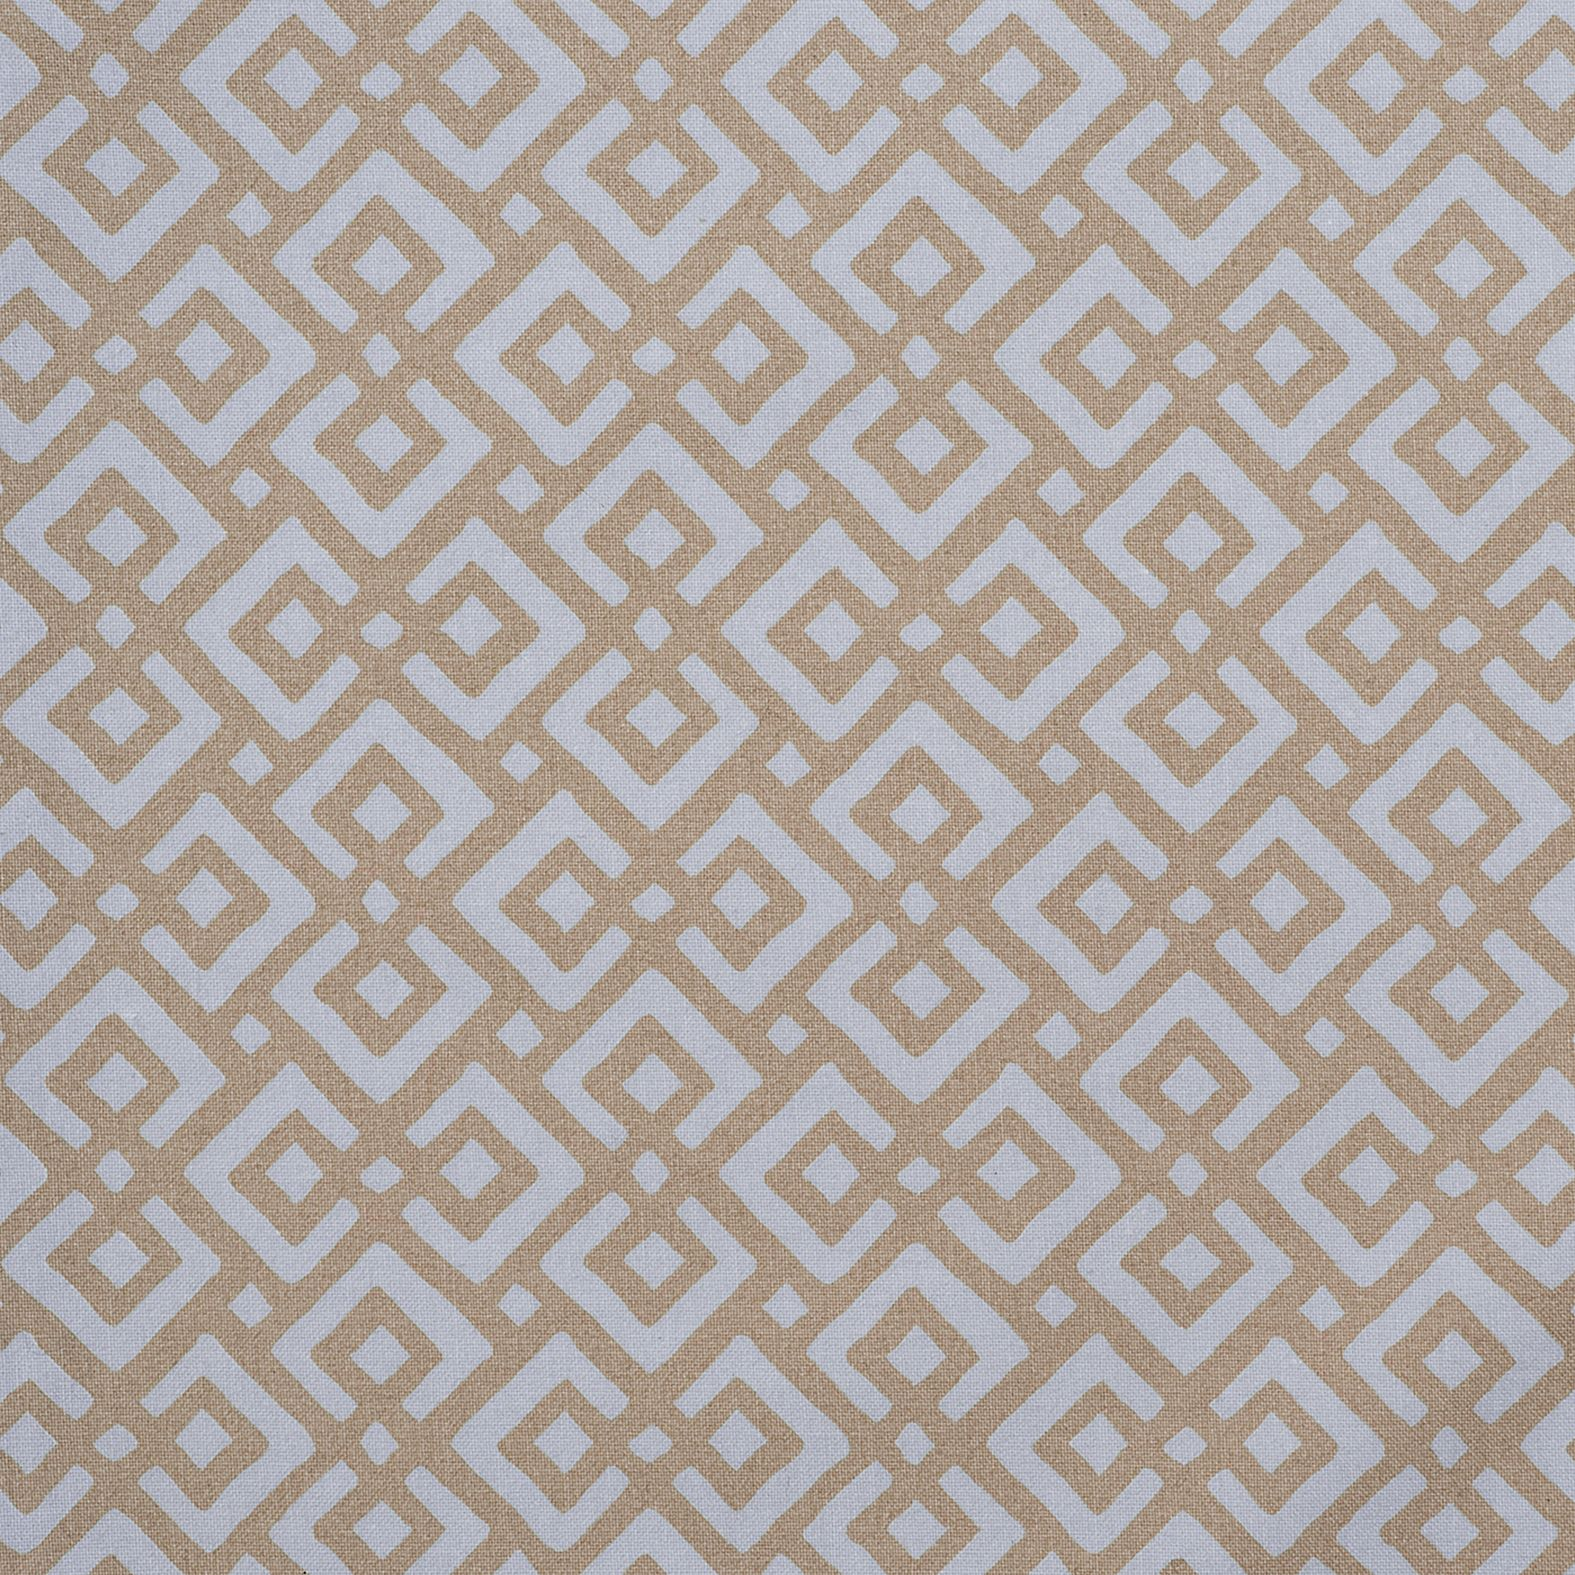 Fog Lattice Fabric By The Yard Serena Lily The Textile Files